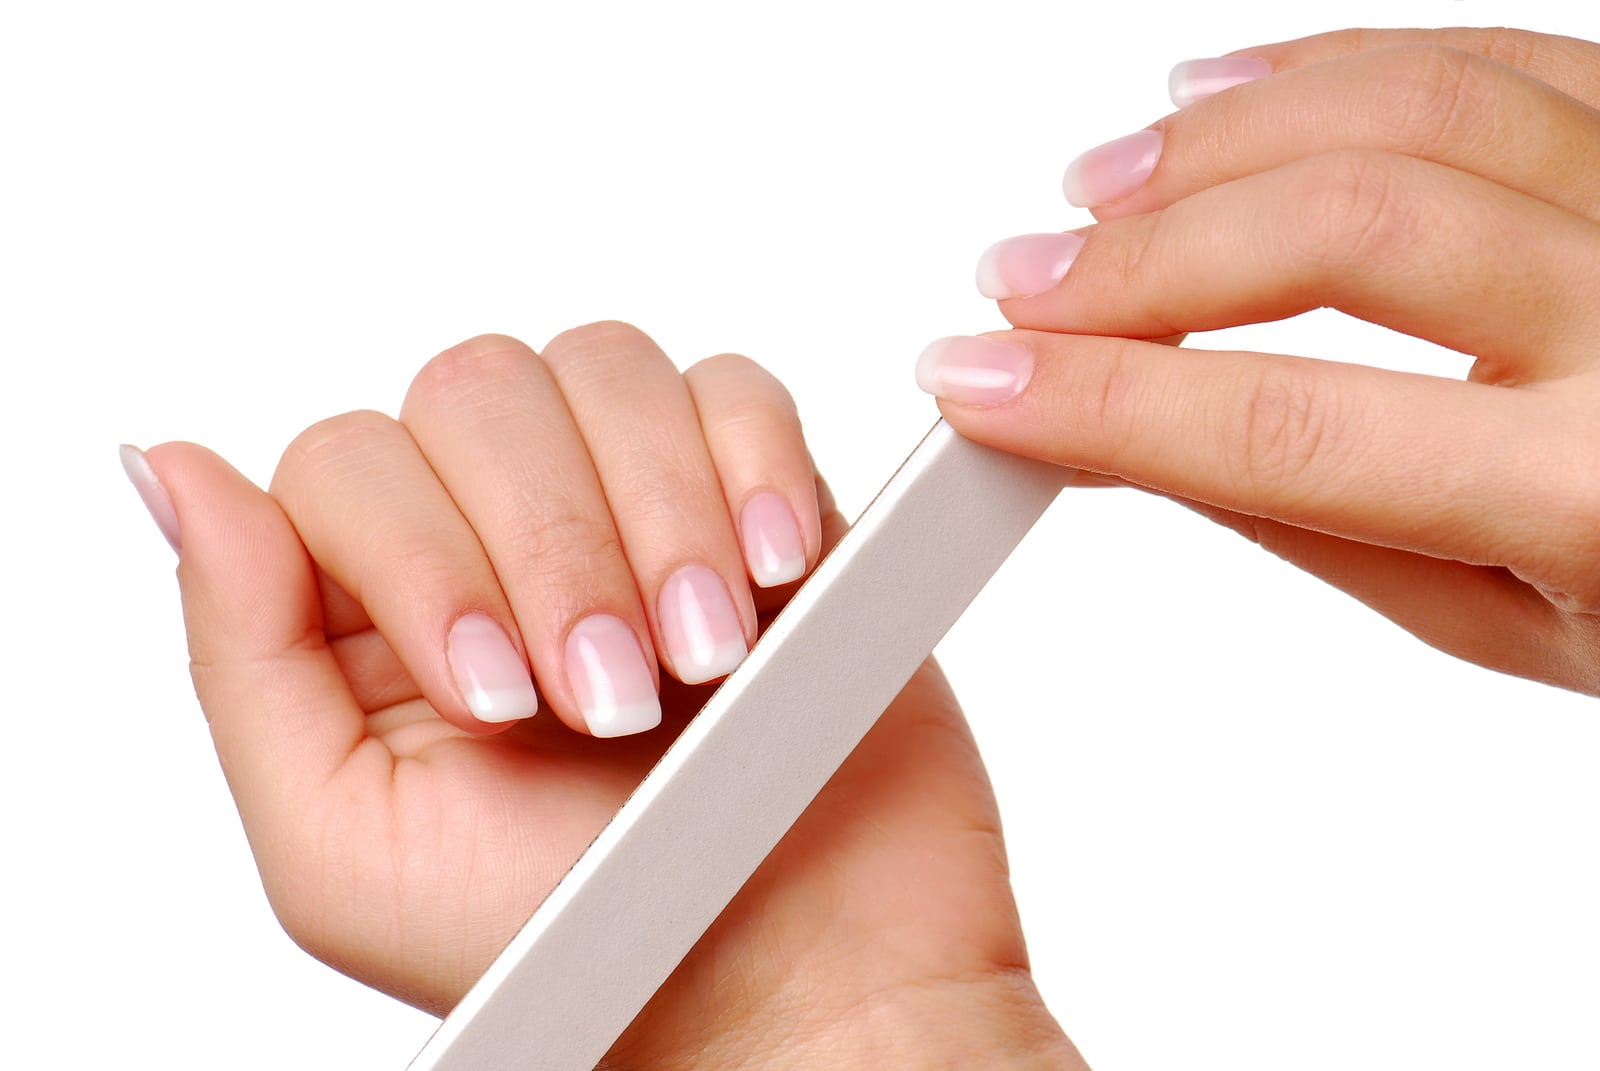 Forum on this topic: How to Clean a Nail Buffer, how-to-clean-a-nail-buffer/